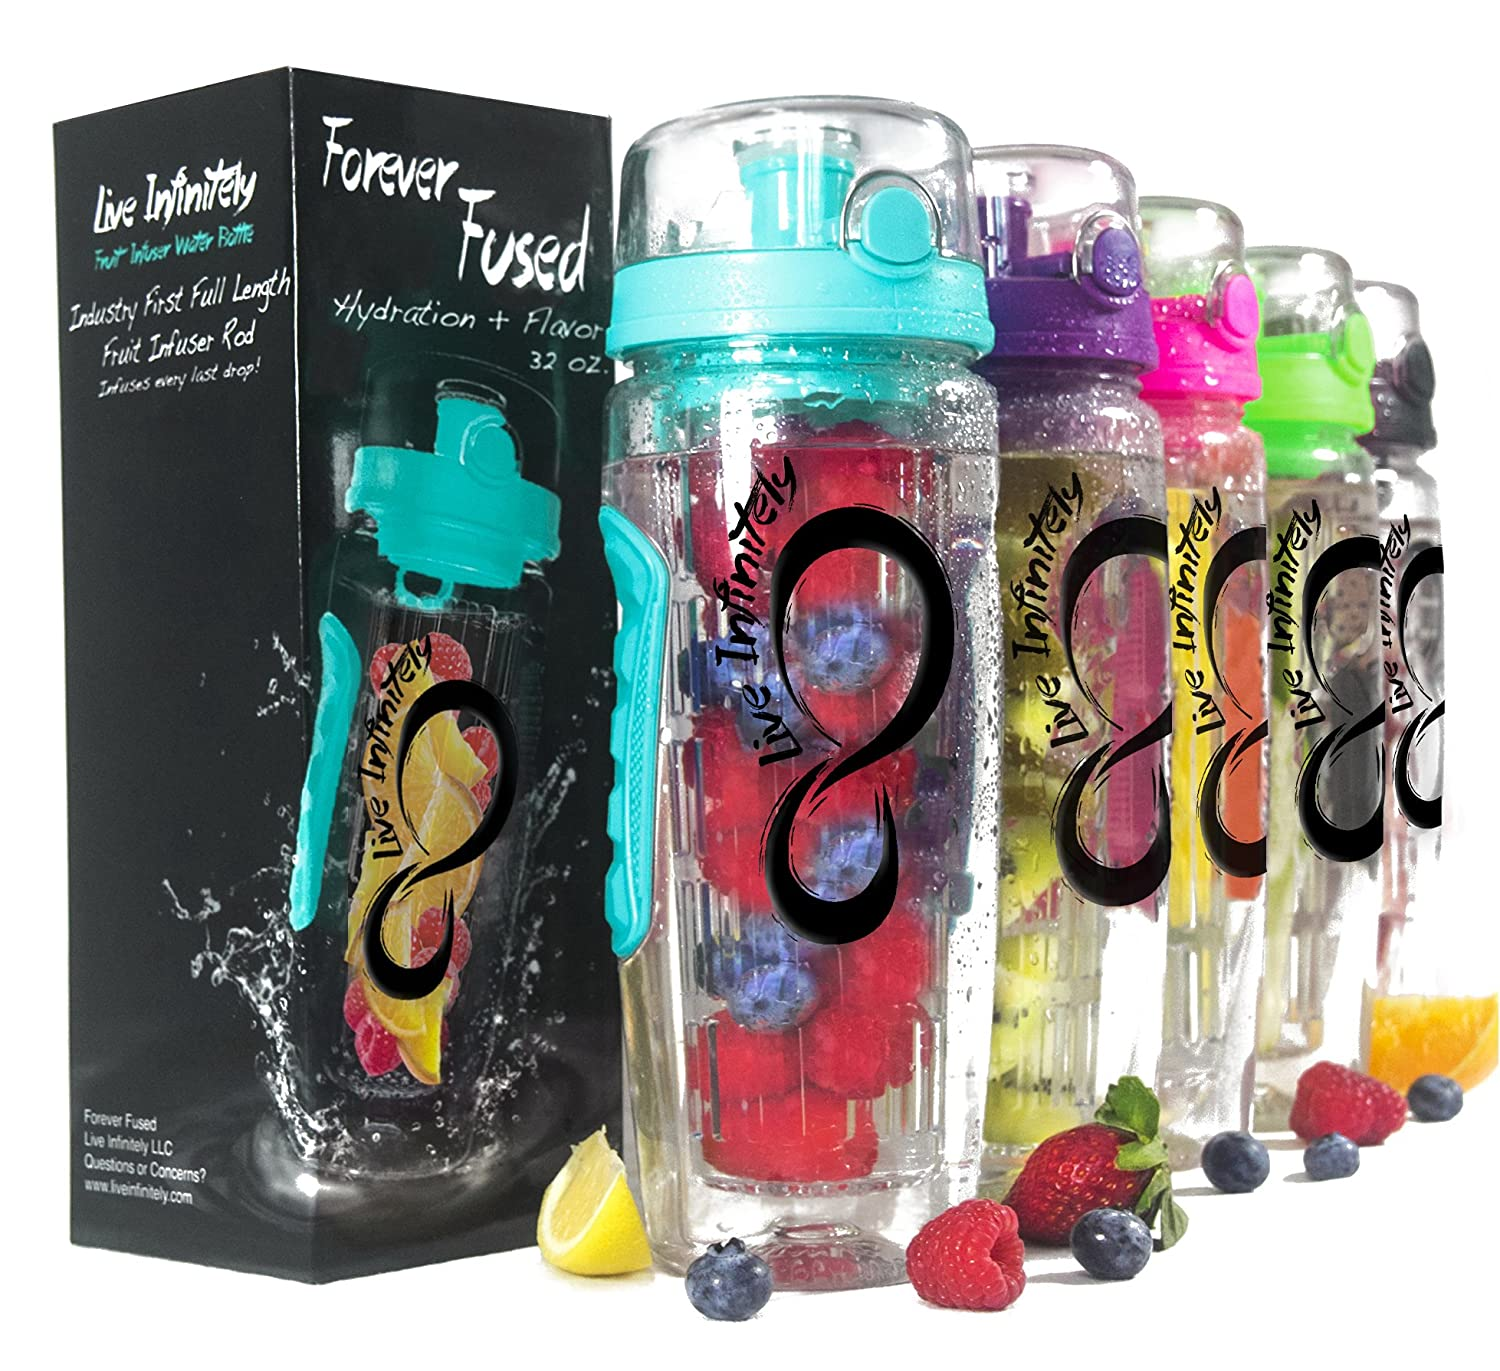 Live Infinitely 32 oz. Infuser Water Bottles